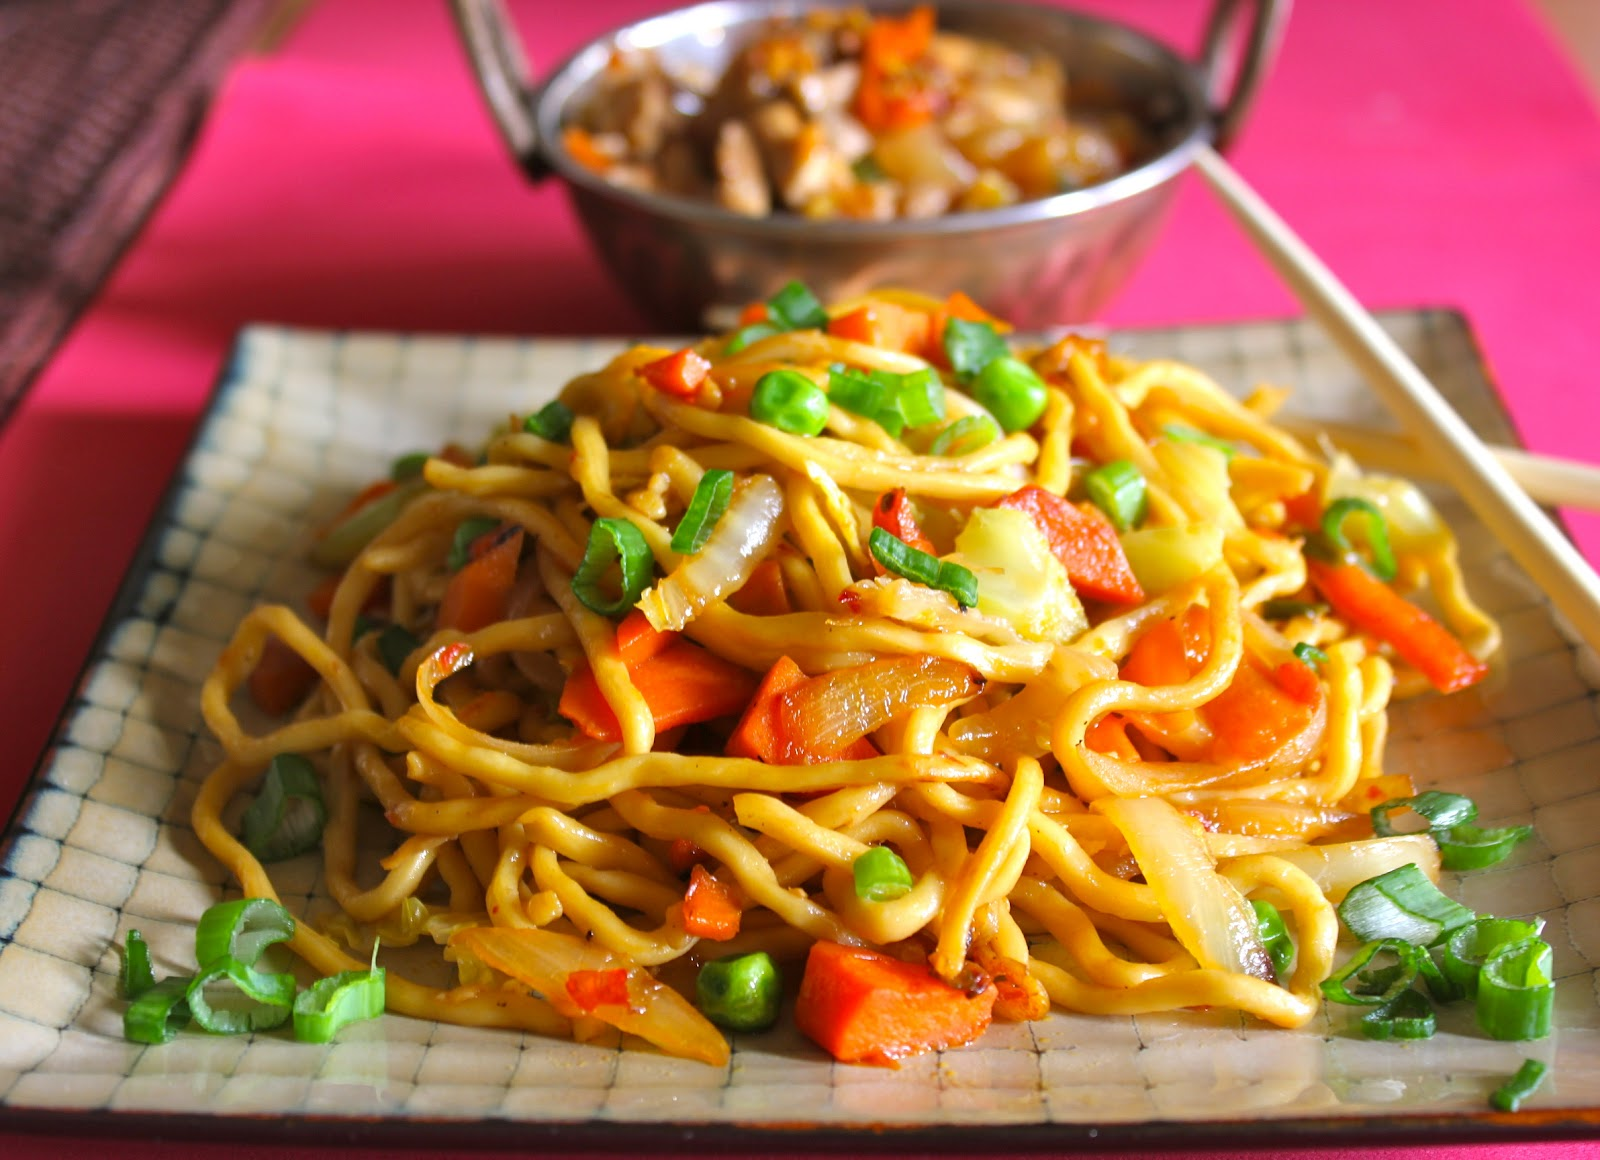 Blessings From My Kitchen: Chilli Chicken and Spicy Vegetable Noodles